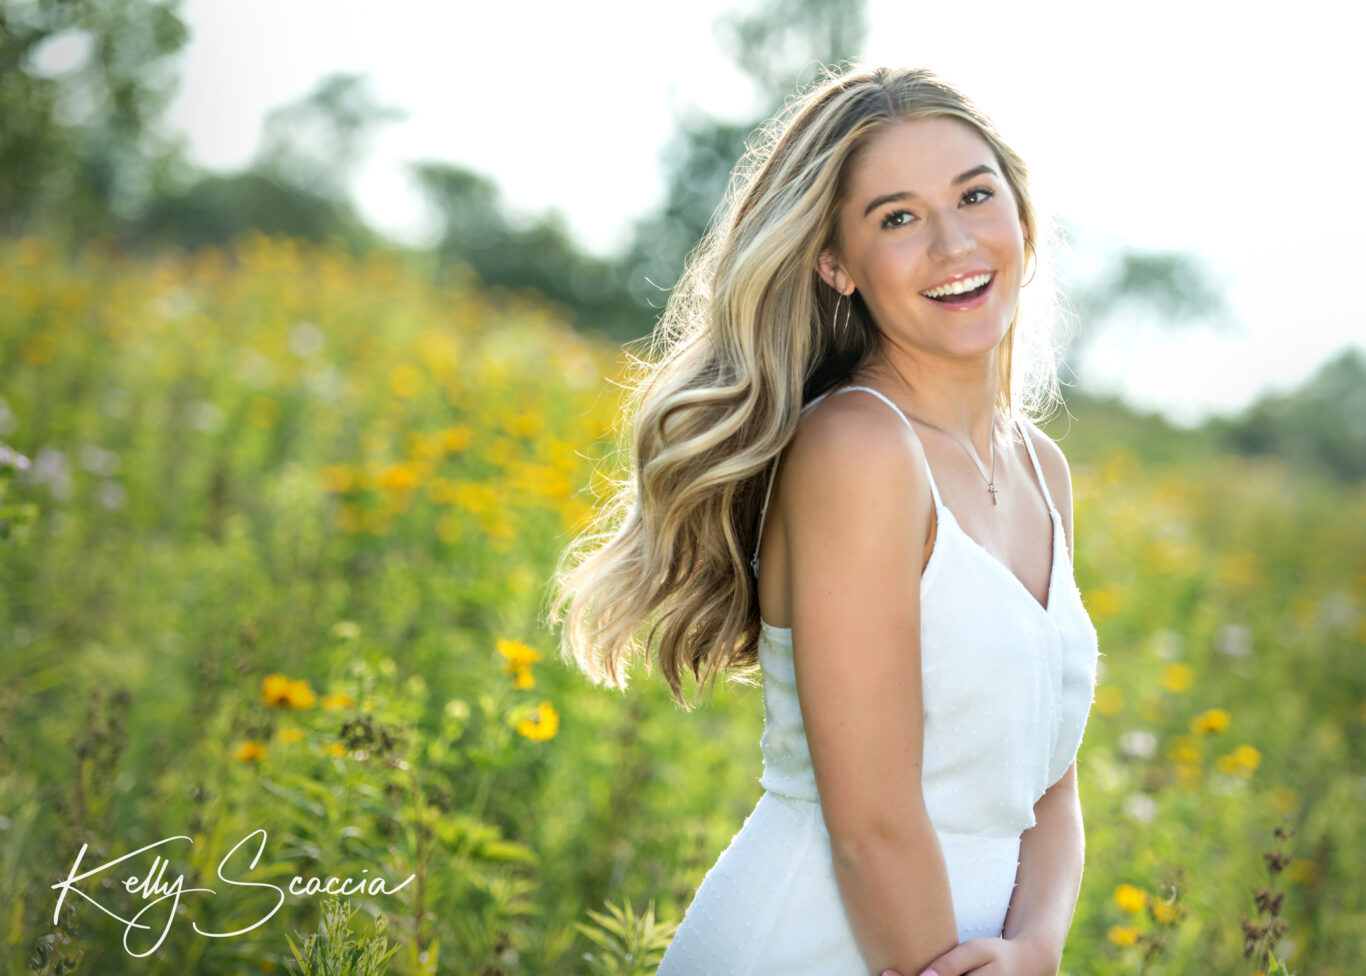 Long blond hair girl smiling in a field looking off to the side wearing a white spaghetti strap dress